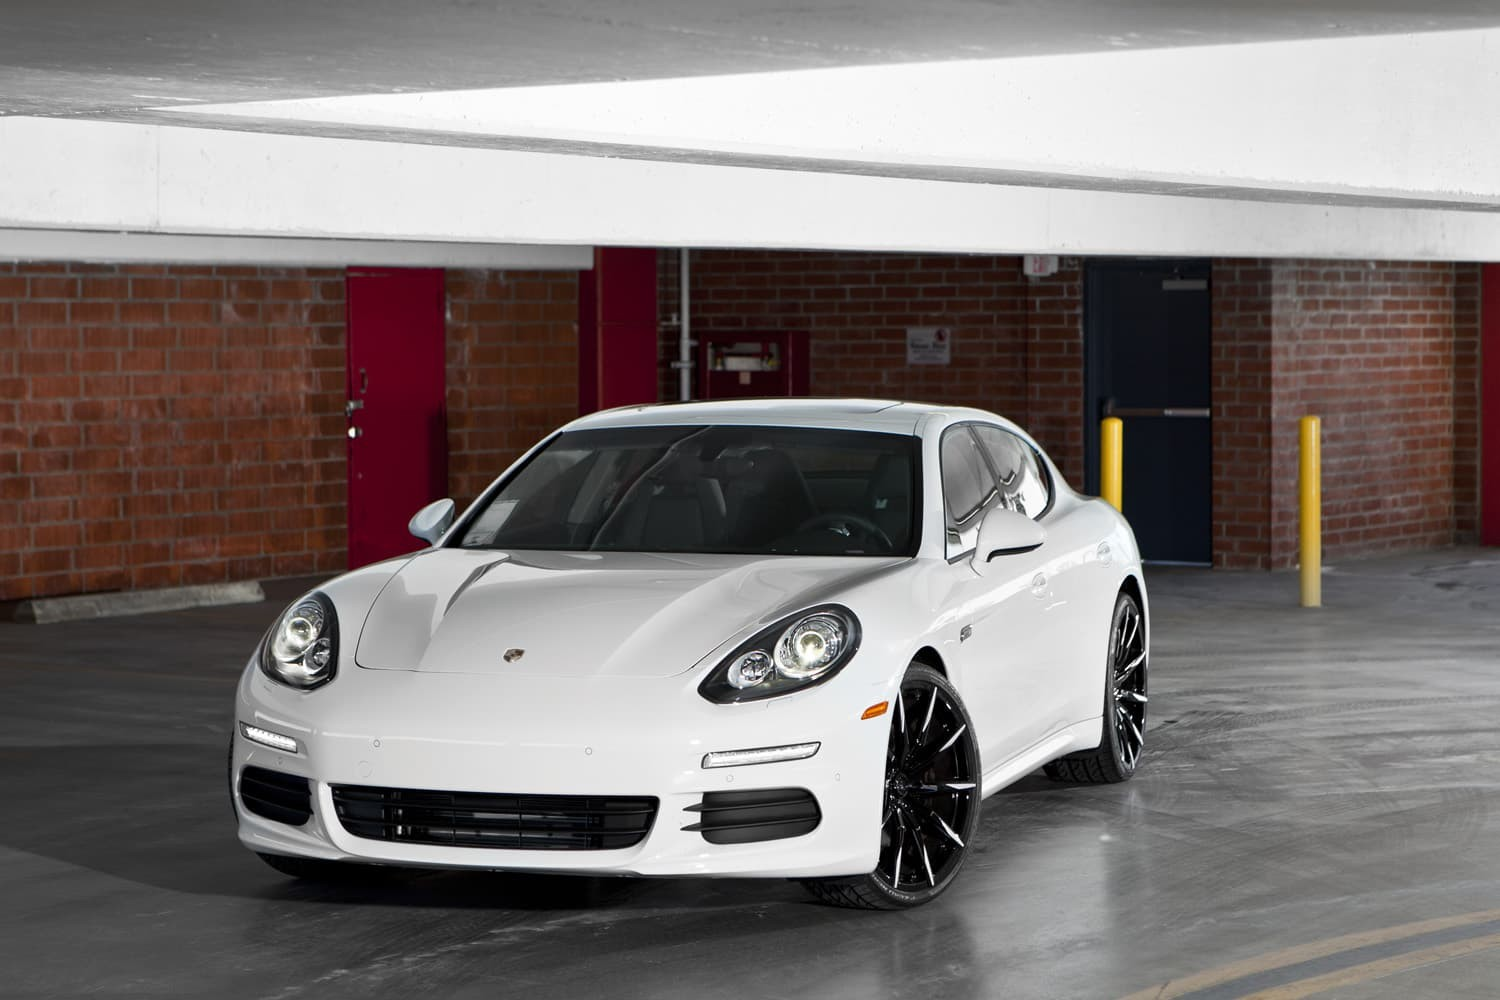 Custom Mono-101 on the Porsche Panamera.